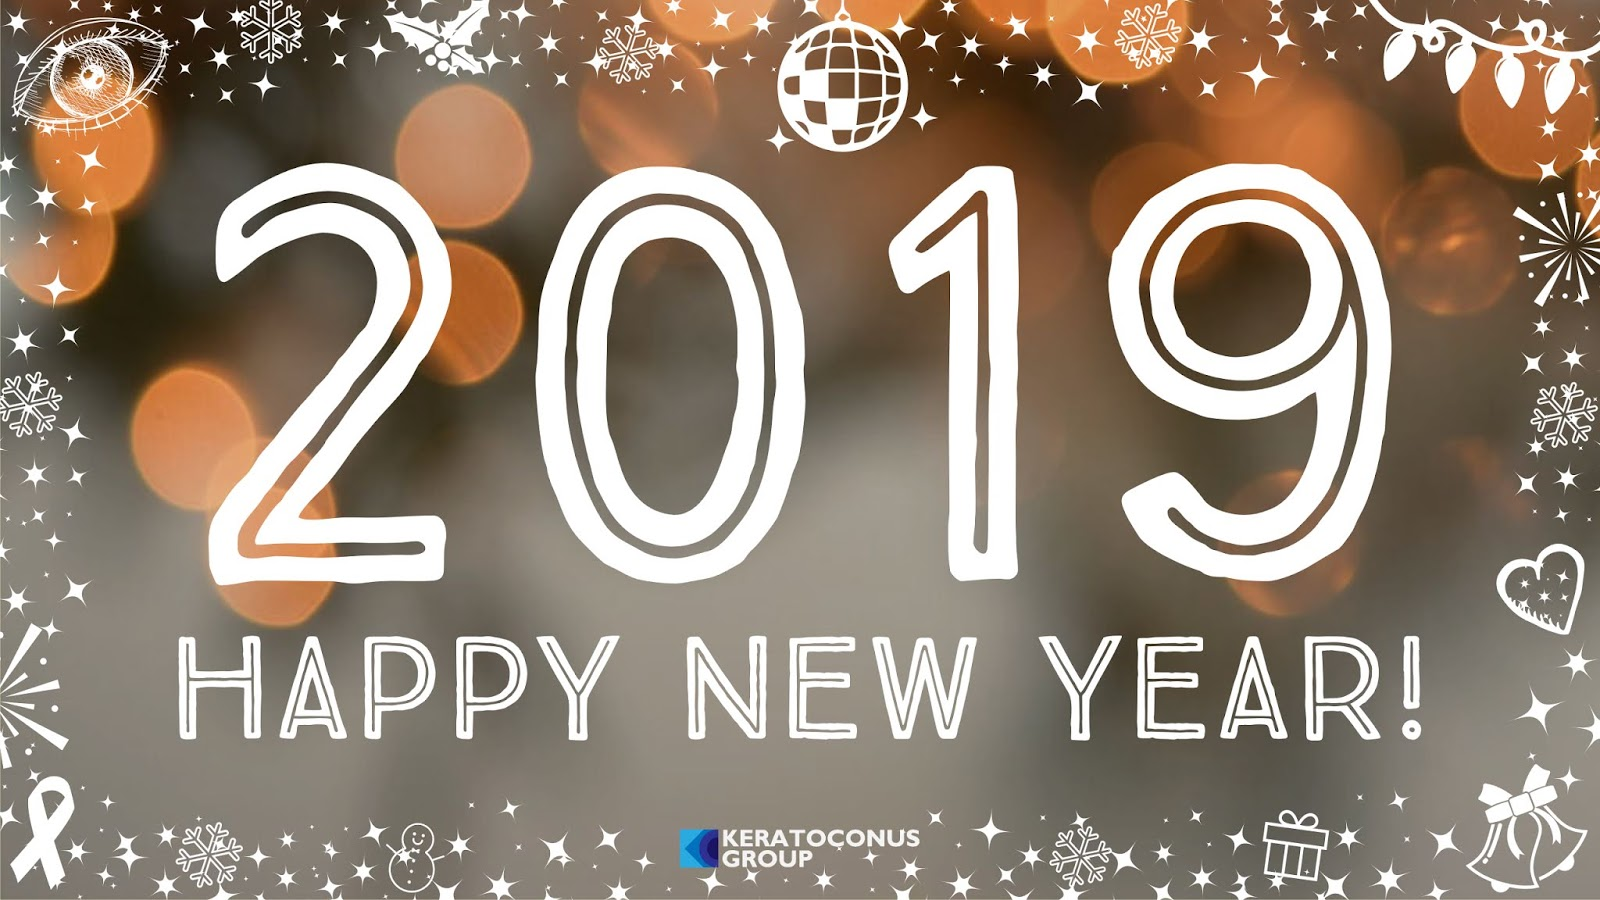 From all of us here at the Keratoconus Group, we wish you a very happy, healthy, and prosperous New Year.